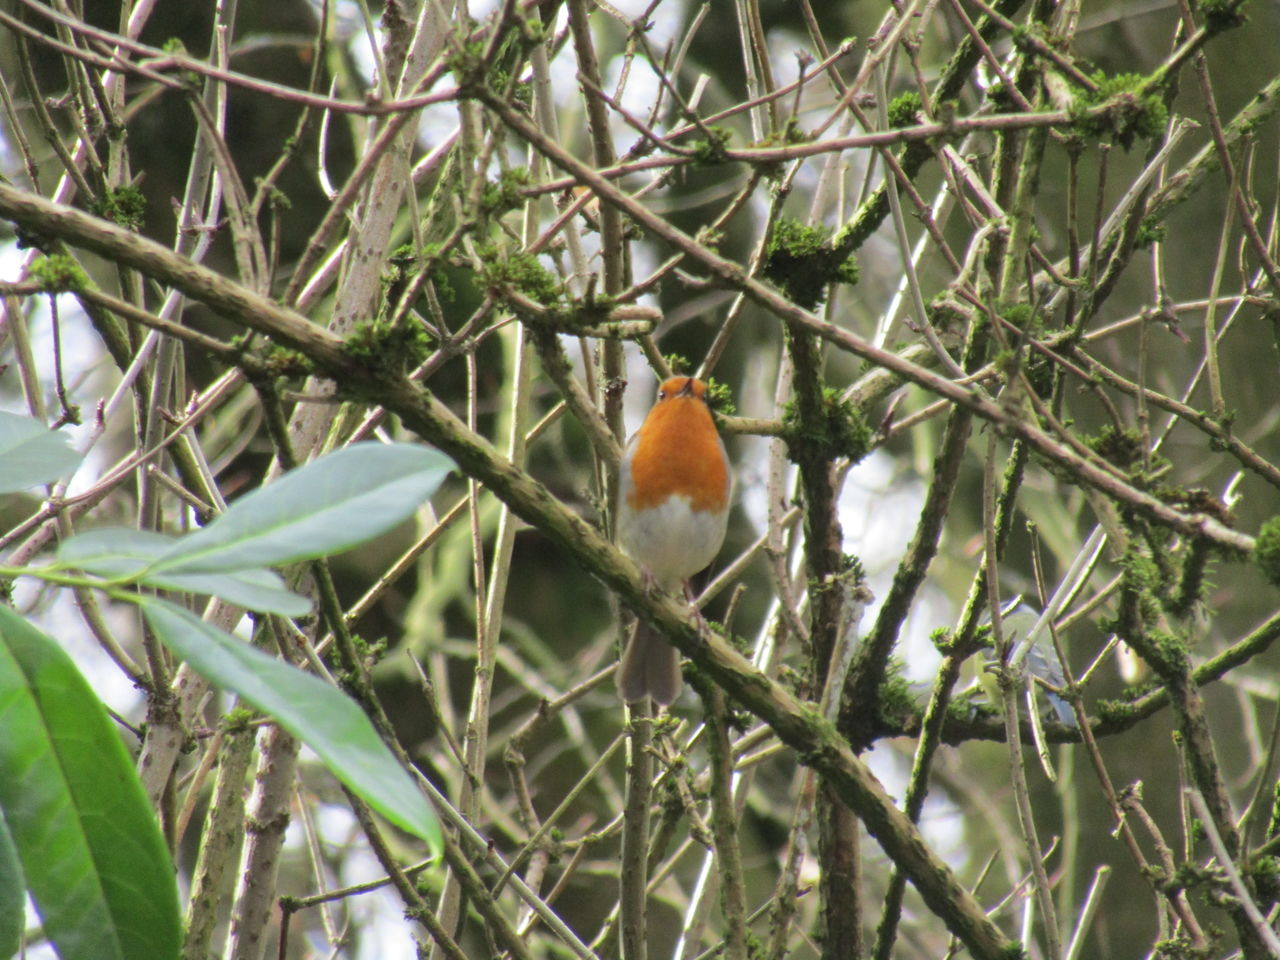 Animal Themes Nature Perching Animals In The Wild Branch Tree One Animal Bird Animal Wildlife No People Beauty In Nature Day Outdoors Close-up Robin Robin Redbreast